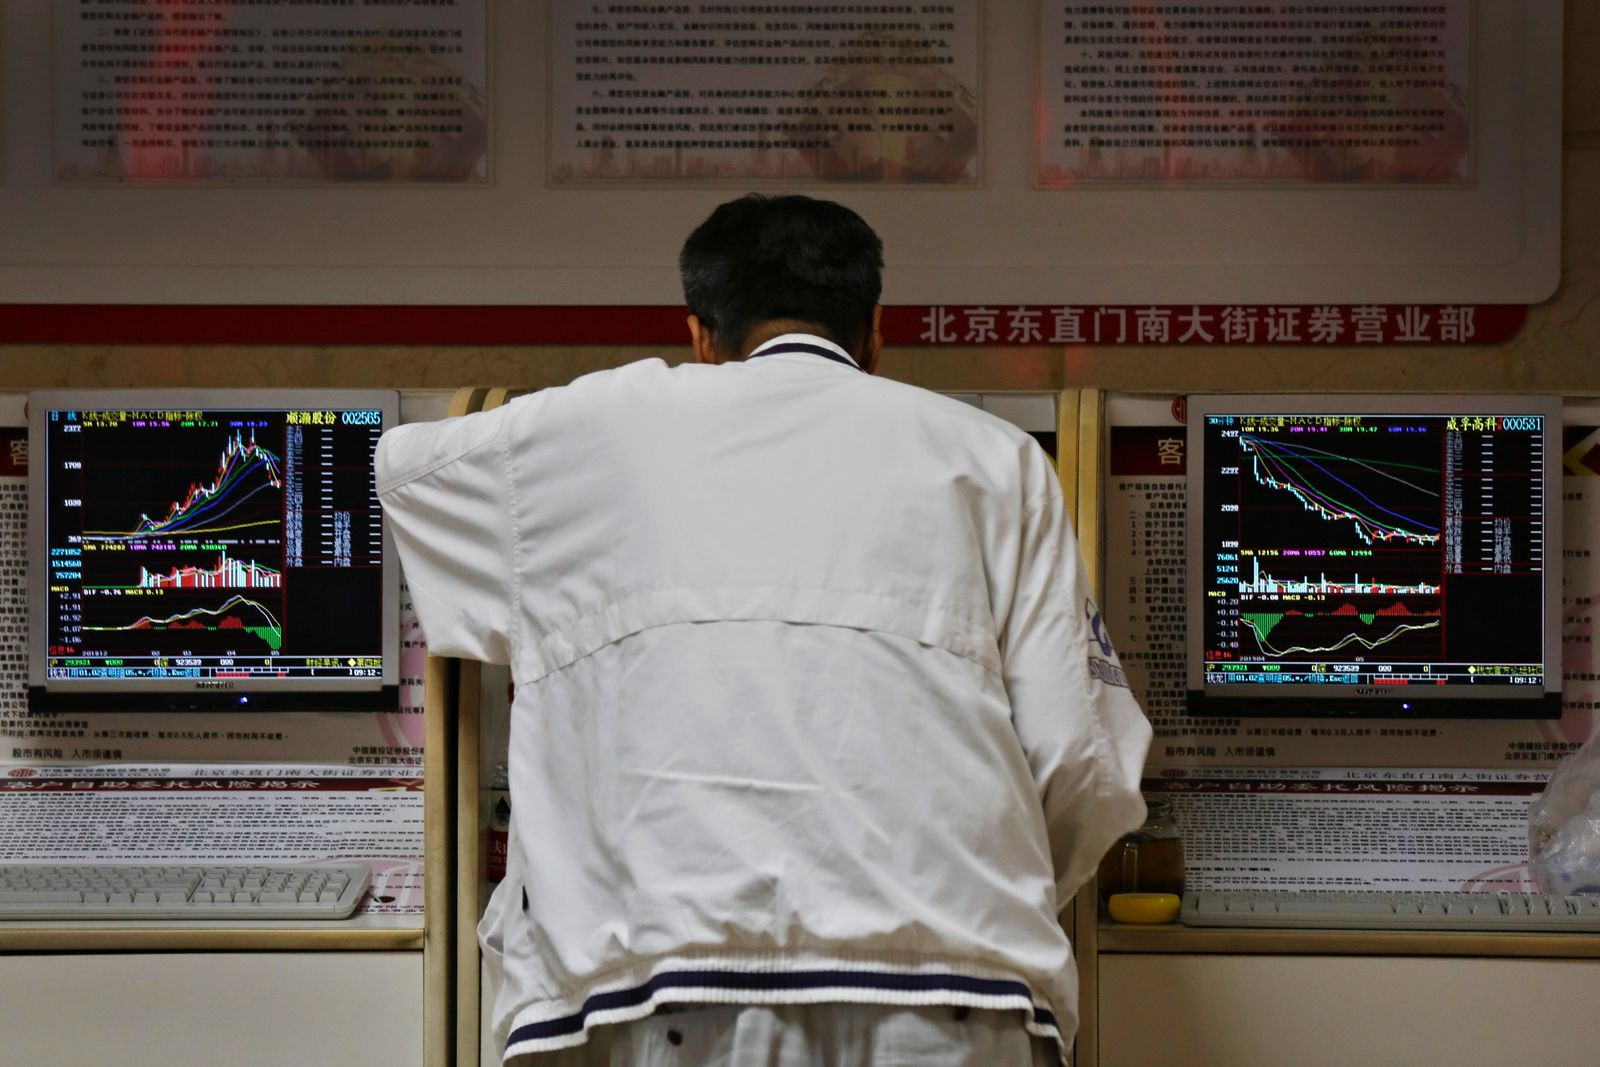 A man checks stock prices at a brokerage house in Beijing, Monday, May 13, 2019. Shares were mostly lower in Asia on Monday after trade talks between the U.S. and China ended Friday without an agreement. (AP Photo/Andy Wong)